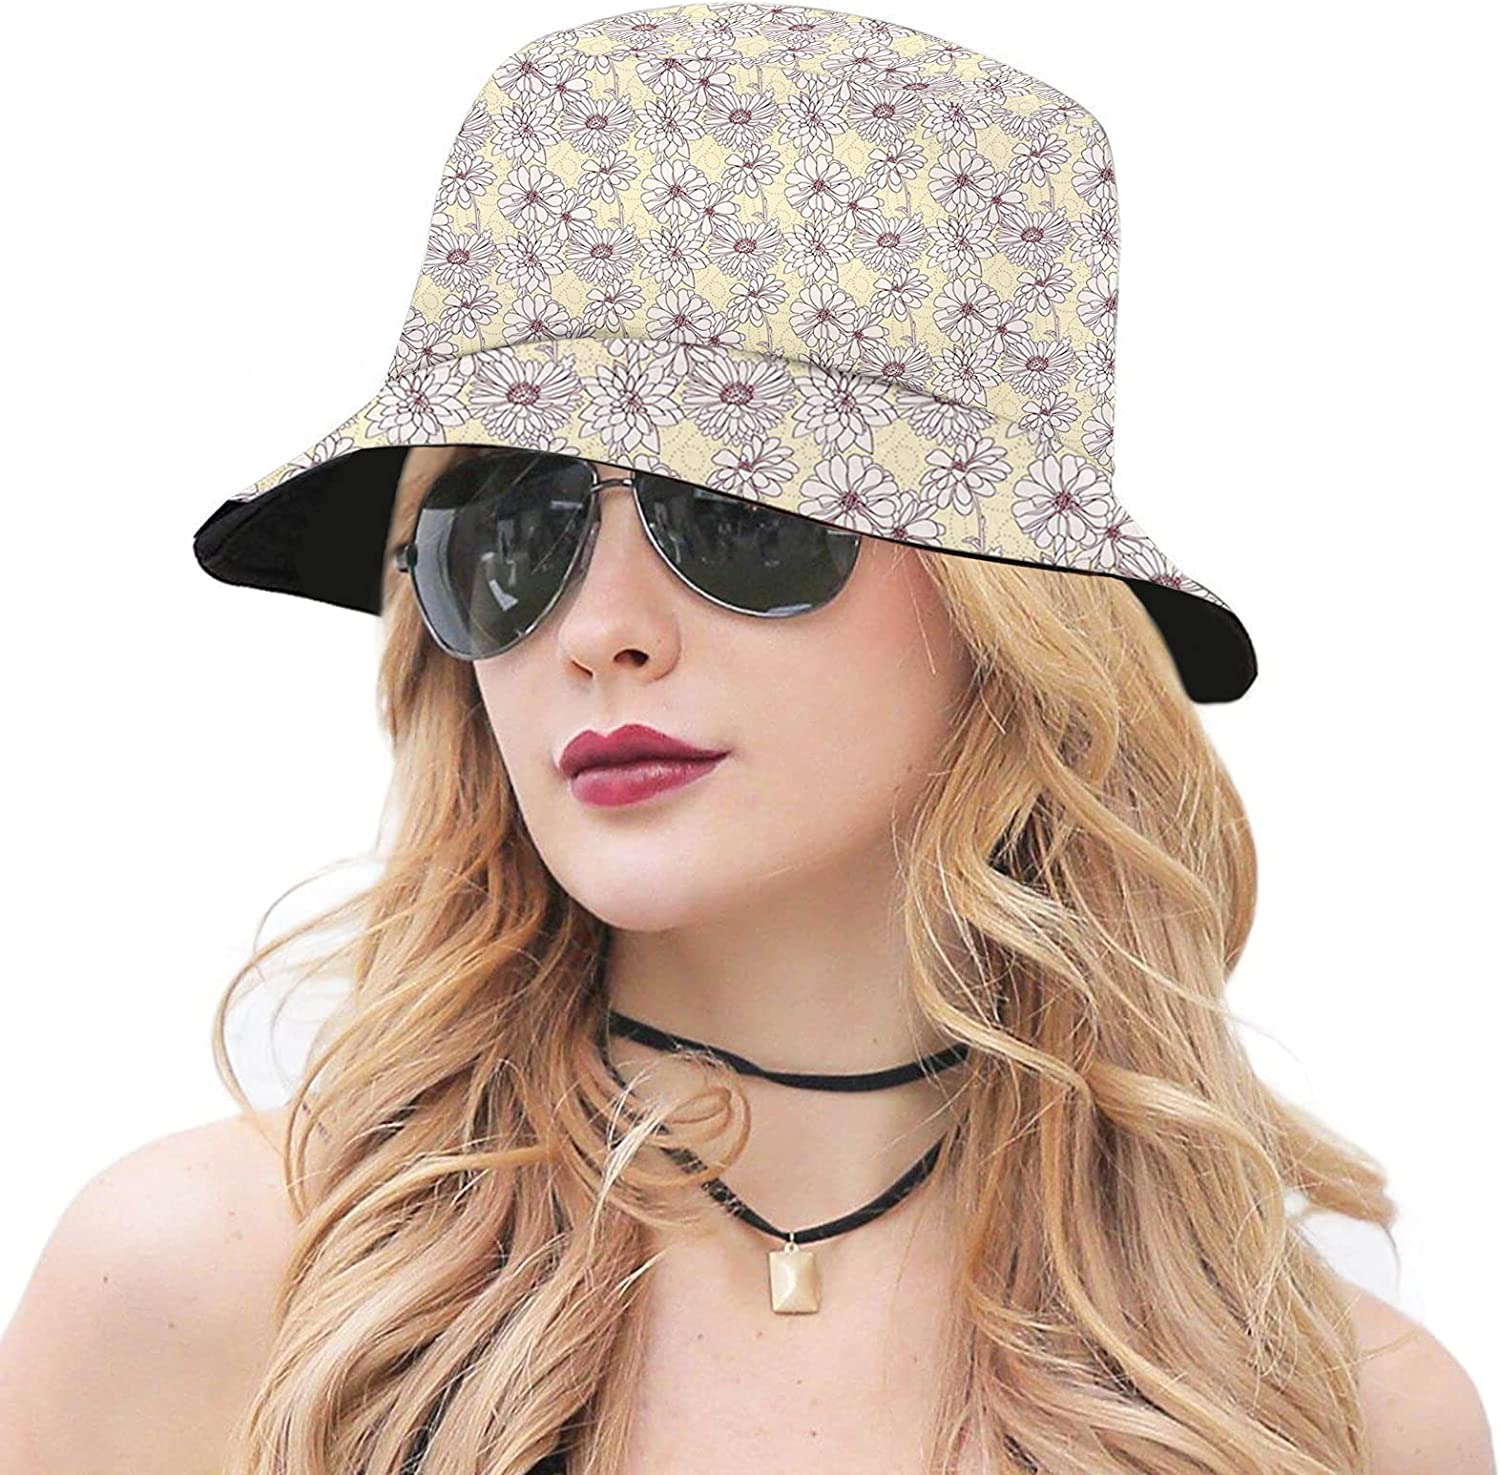 Colorful Packable Summer Super intense Max 48% OFF SALE Sun Cap Protection Travel